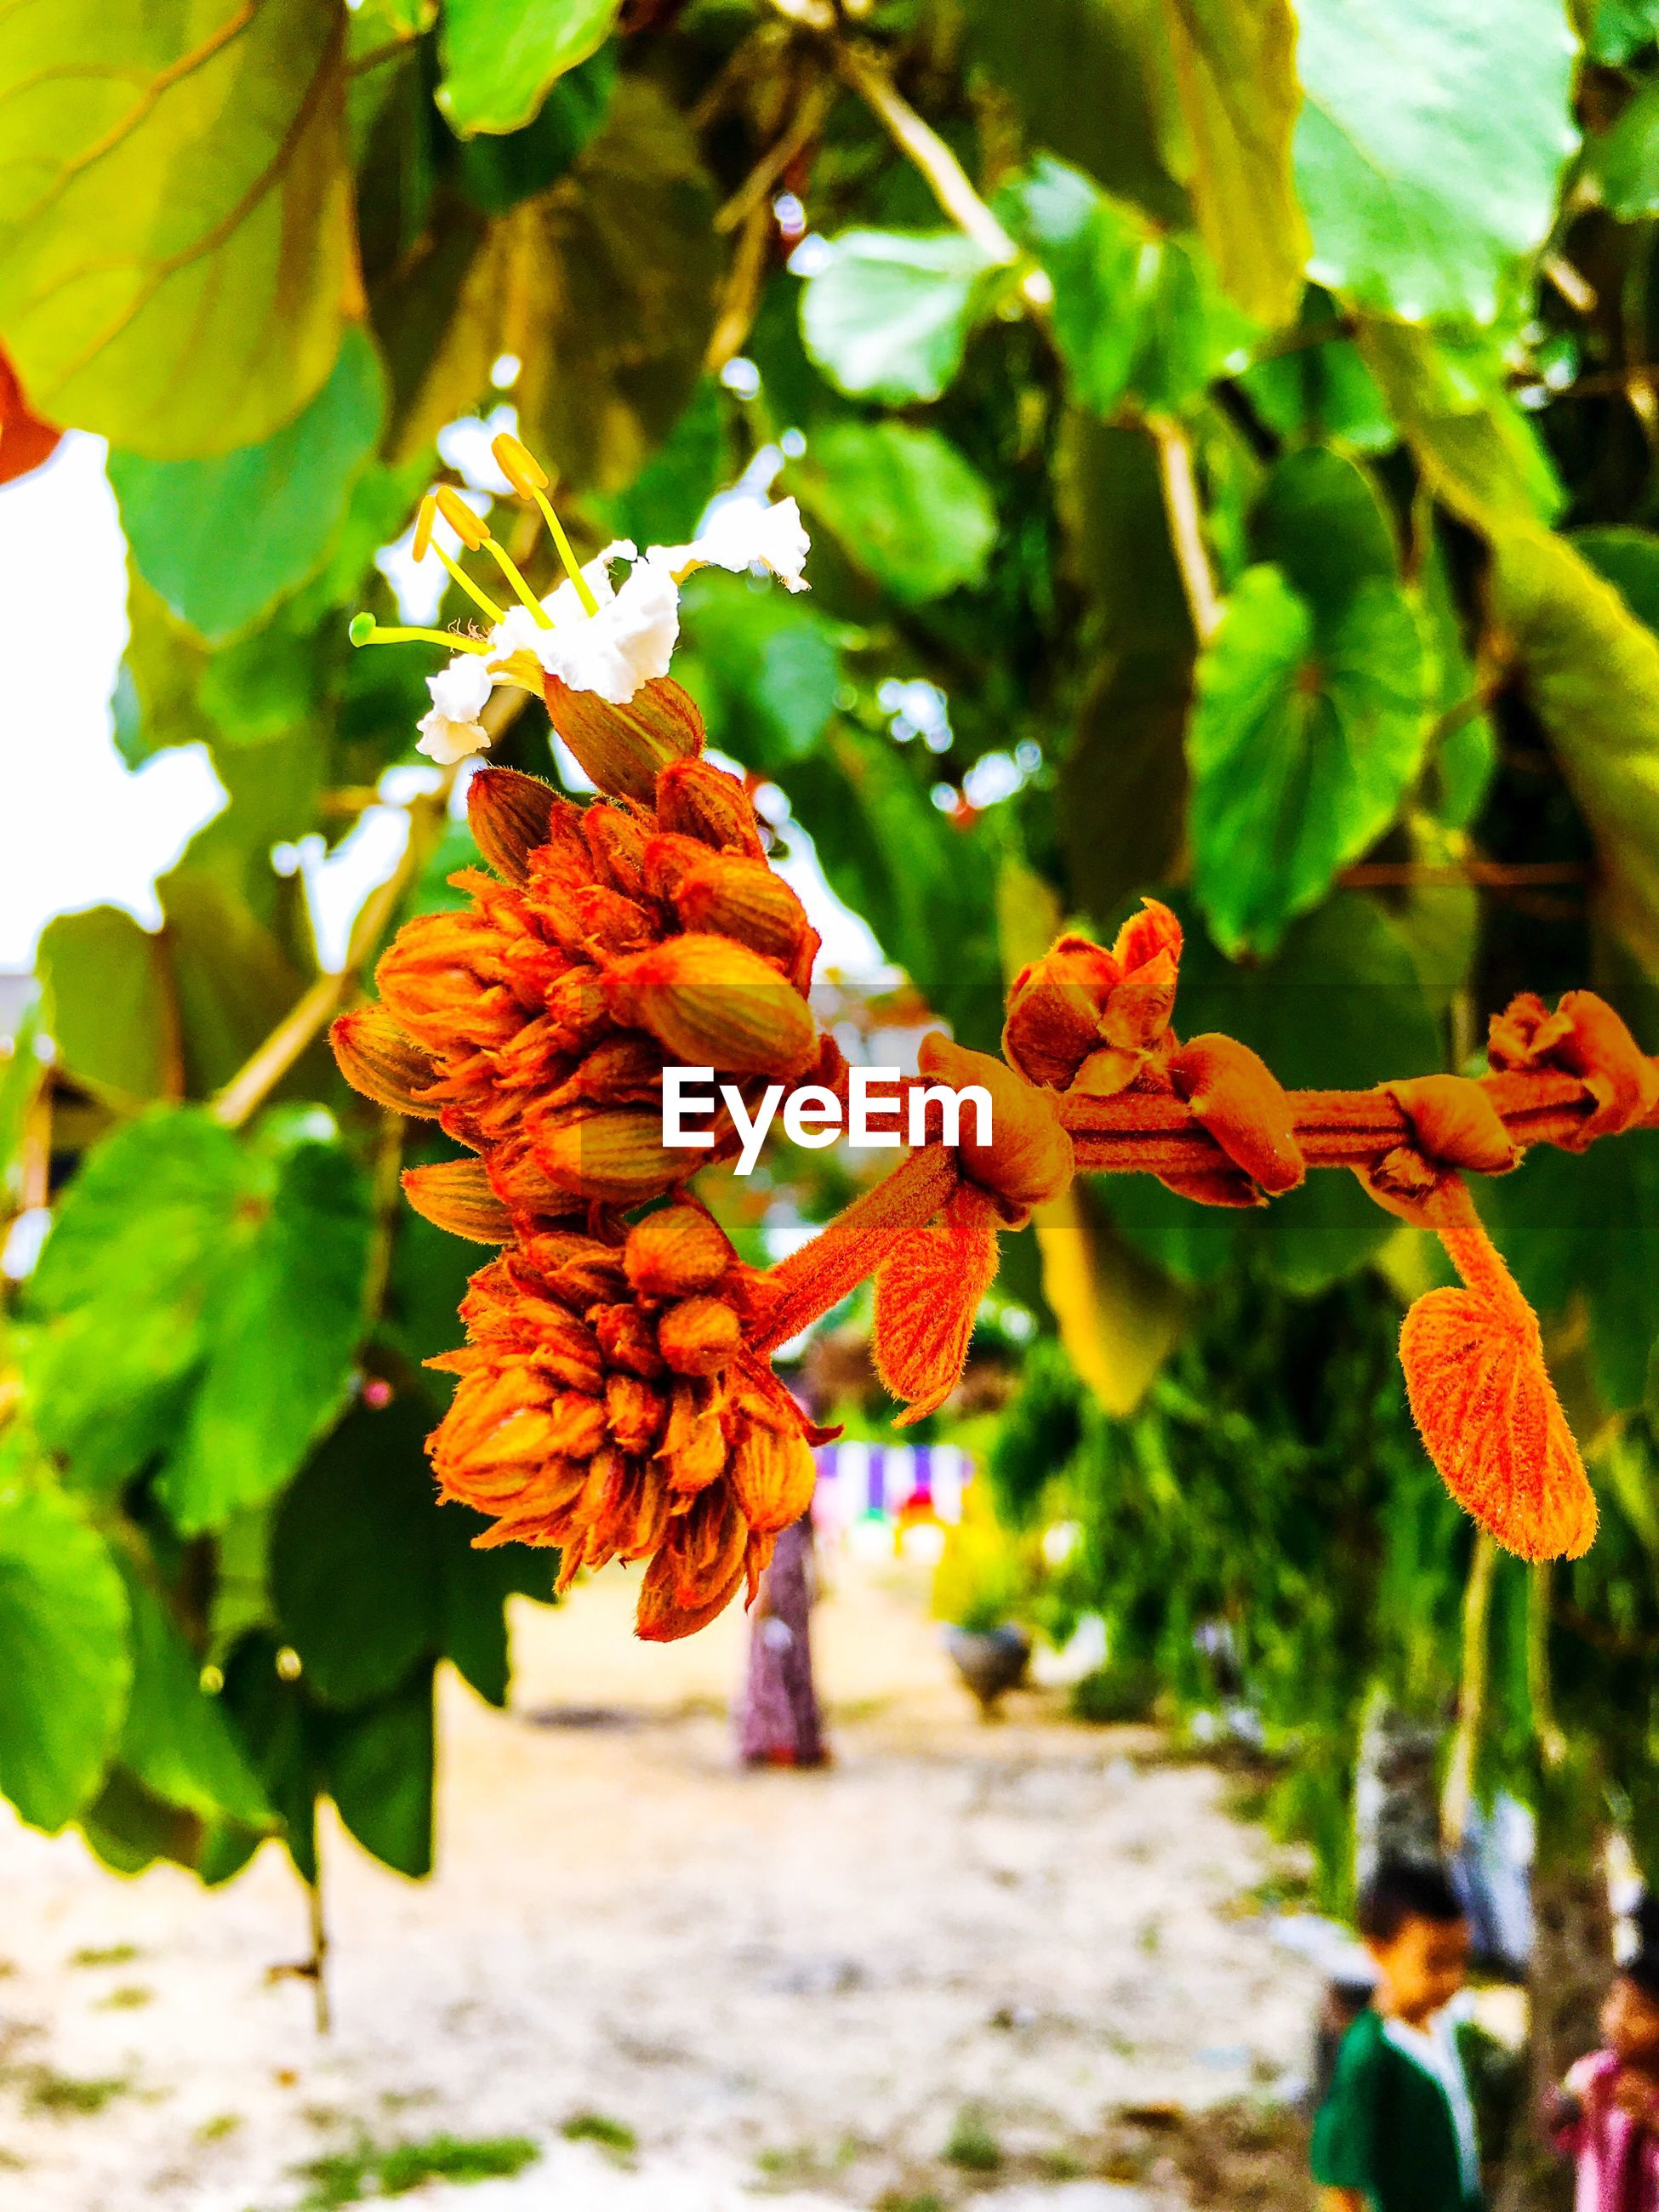 leaf, growth, freshness, flower, fruit, tree, nature, focus on foreground, plant, beauty in nature, orange color, branch, yellow, green color, close-up, day, fragility, outdoors, food and drink